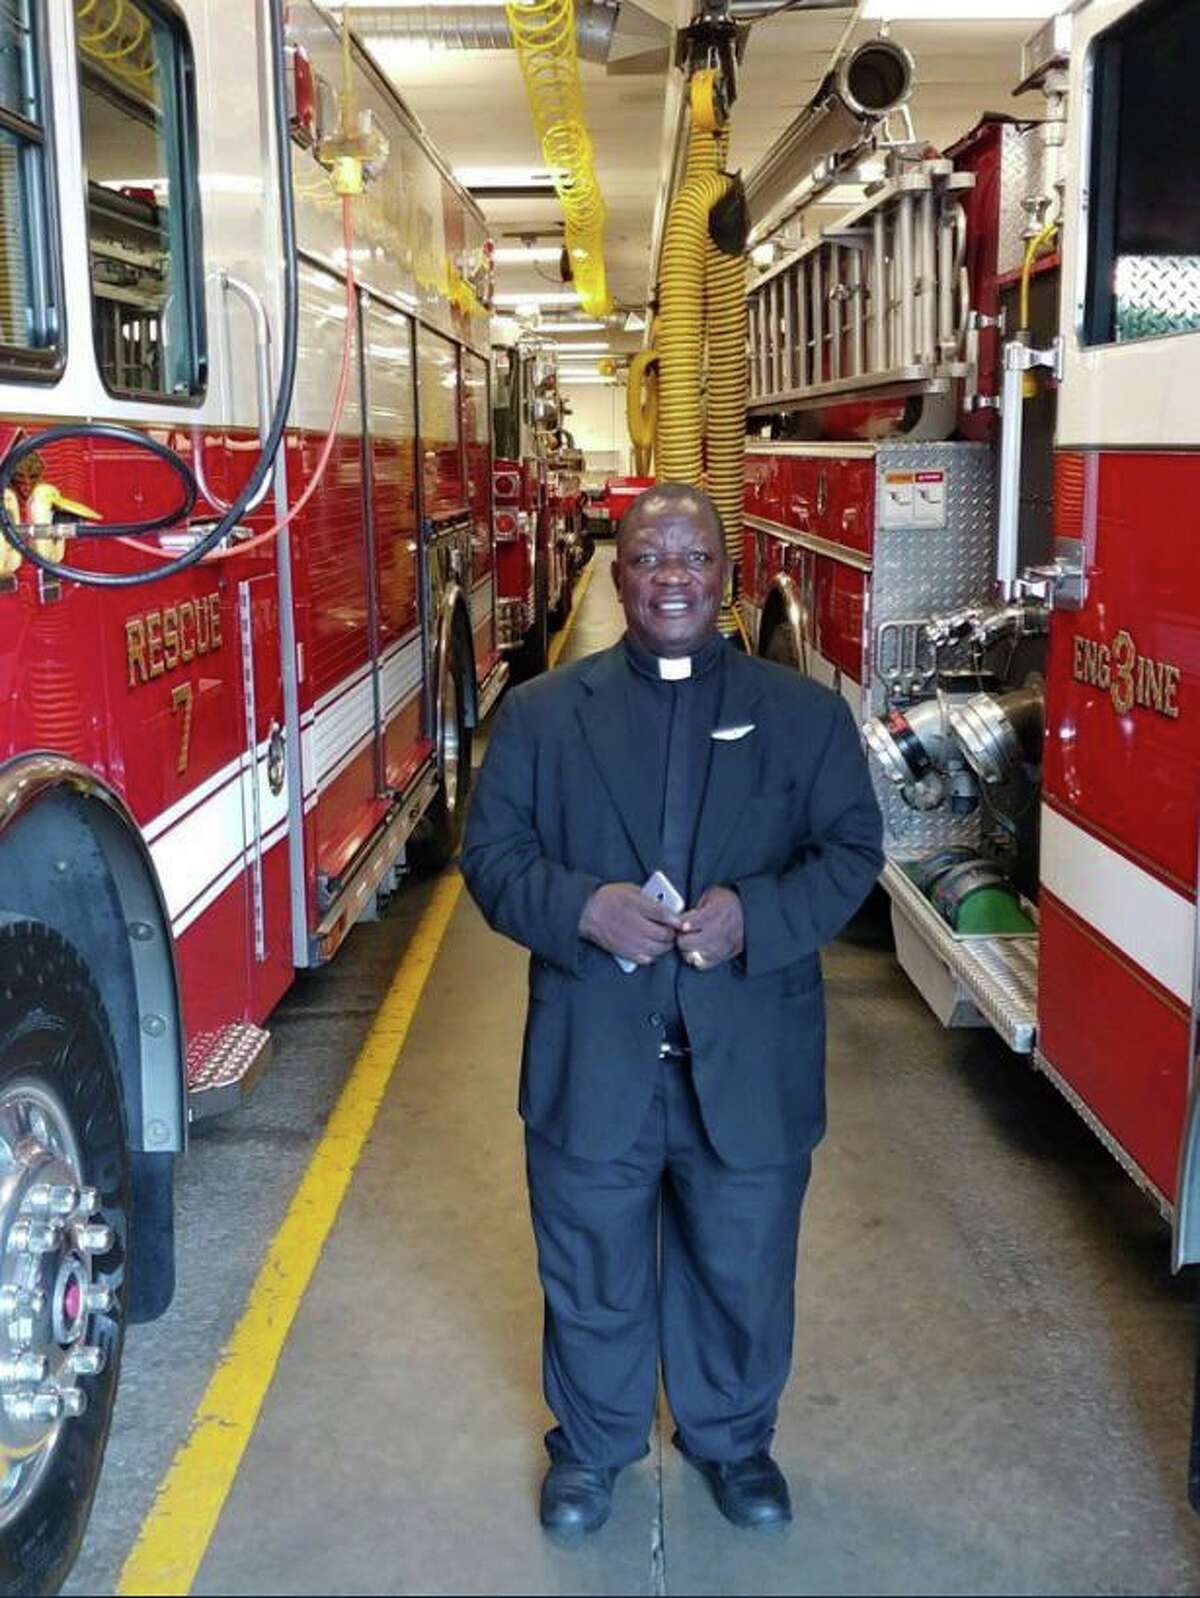 Father Joseph Dube, who was visiting St. Mary's Parish all the way from the Diocese of Sokoto in Northern Nigeria, dropped by the Ridgefield Fire Department headquarters on Catoonah Street earlier this week. Ridgefield Capt.RichardLawlor, an ordained Deacon, brought Father Dube for a tour of headquarters.